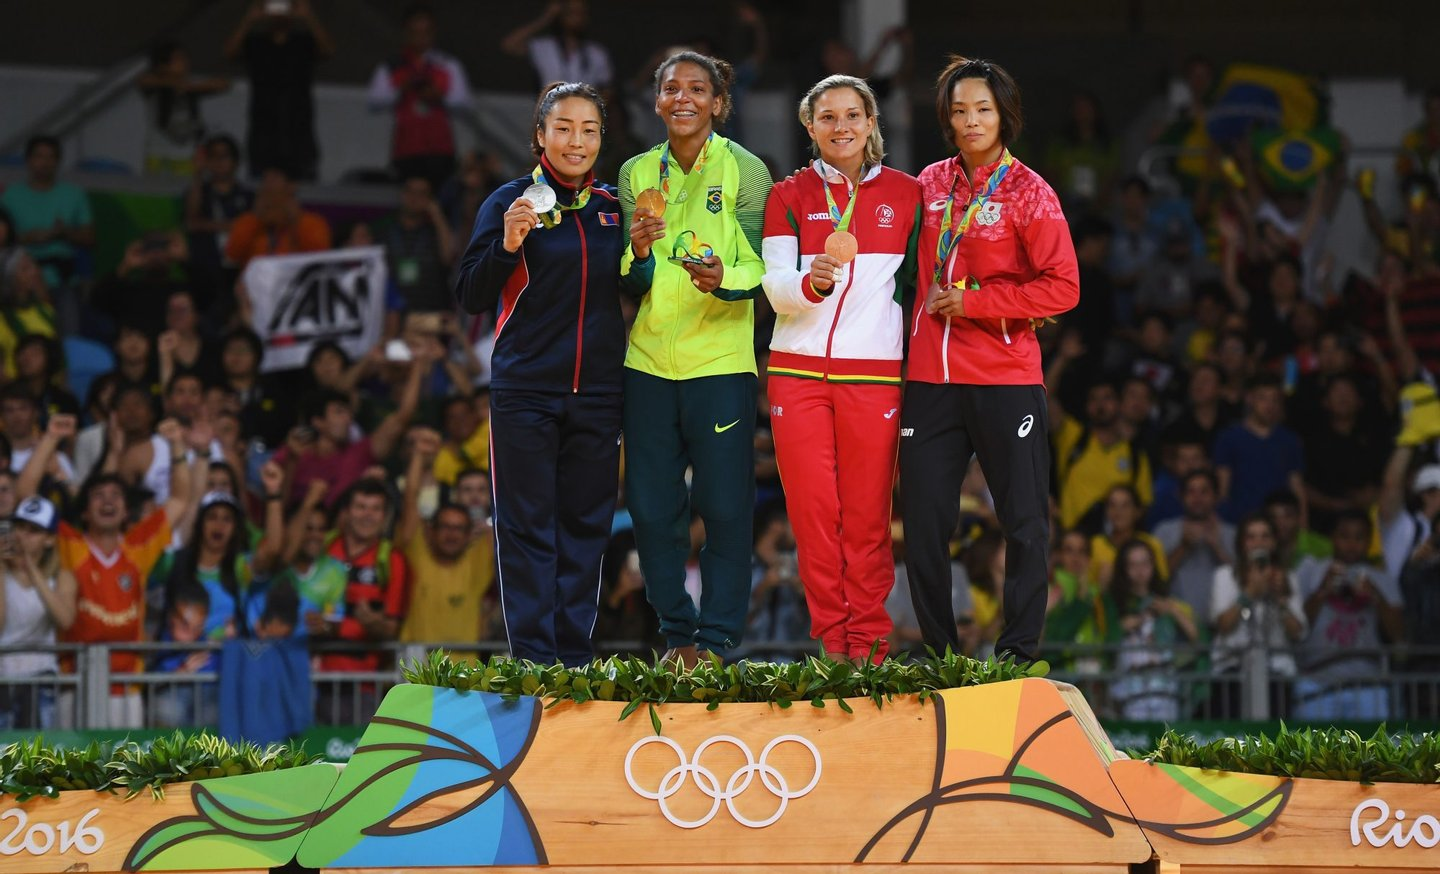 RIO DE JANEIRO, BRAZIL - AUGUST 08: Silver medalist Sumiya Dorjsuren of Mongolia, gold medalist Rafaela Silva of Brazil, bronze medalist Telma Monteiro of Portugal and bronze medalist Kaori Matsumoto of Japan celebrate on the podium after the Women's -57 kg Judo Contest on Day 3 of the Rio 2016 Olympic Games at Carioca Arena 2 on August 8, 2016 in Rio de Janeiro, Brazil. (Photo by David Ramos/Getty Images)